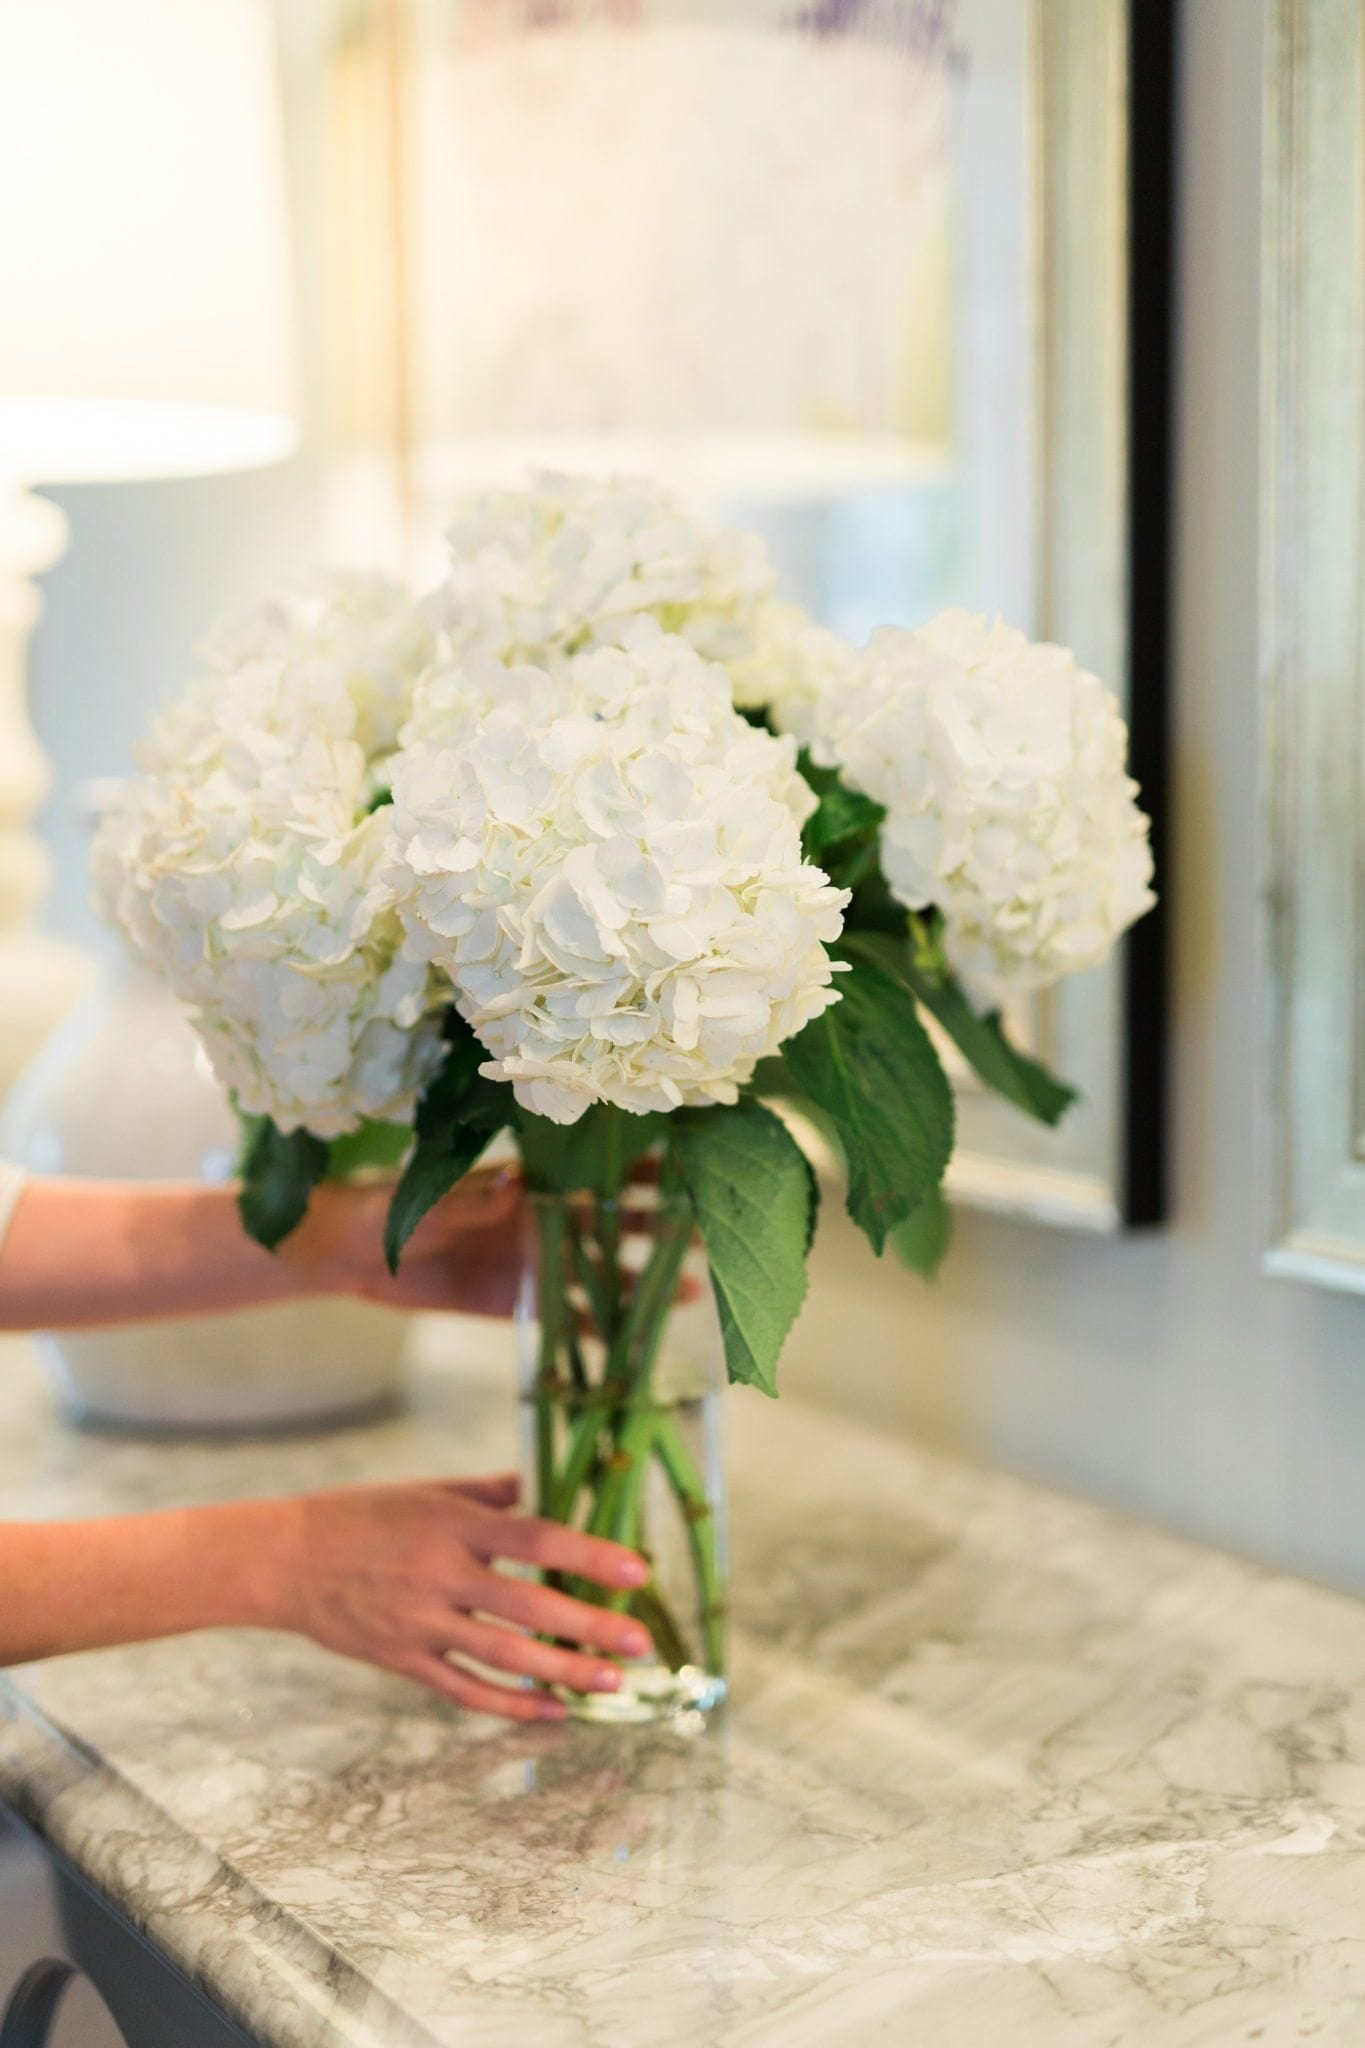 How to keep flower arrangements alive longer. White hydrangea flower in a clear vase.